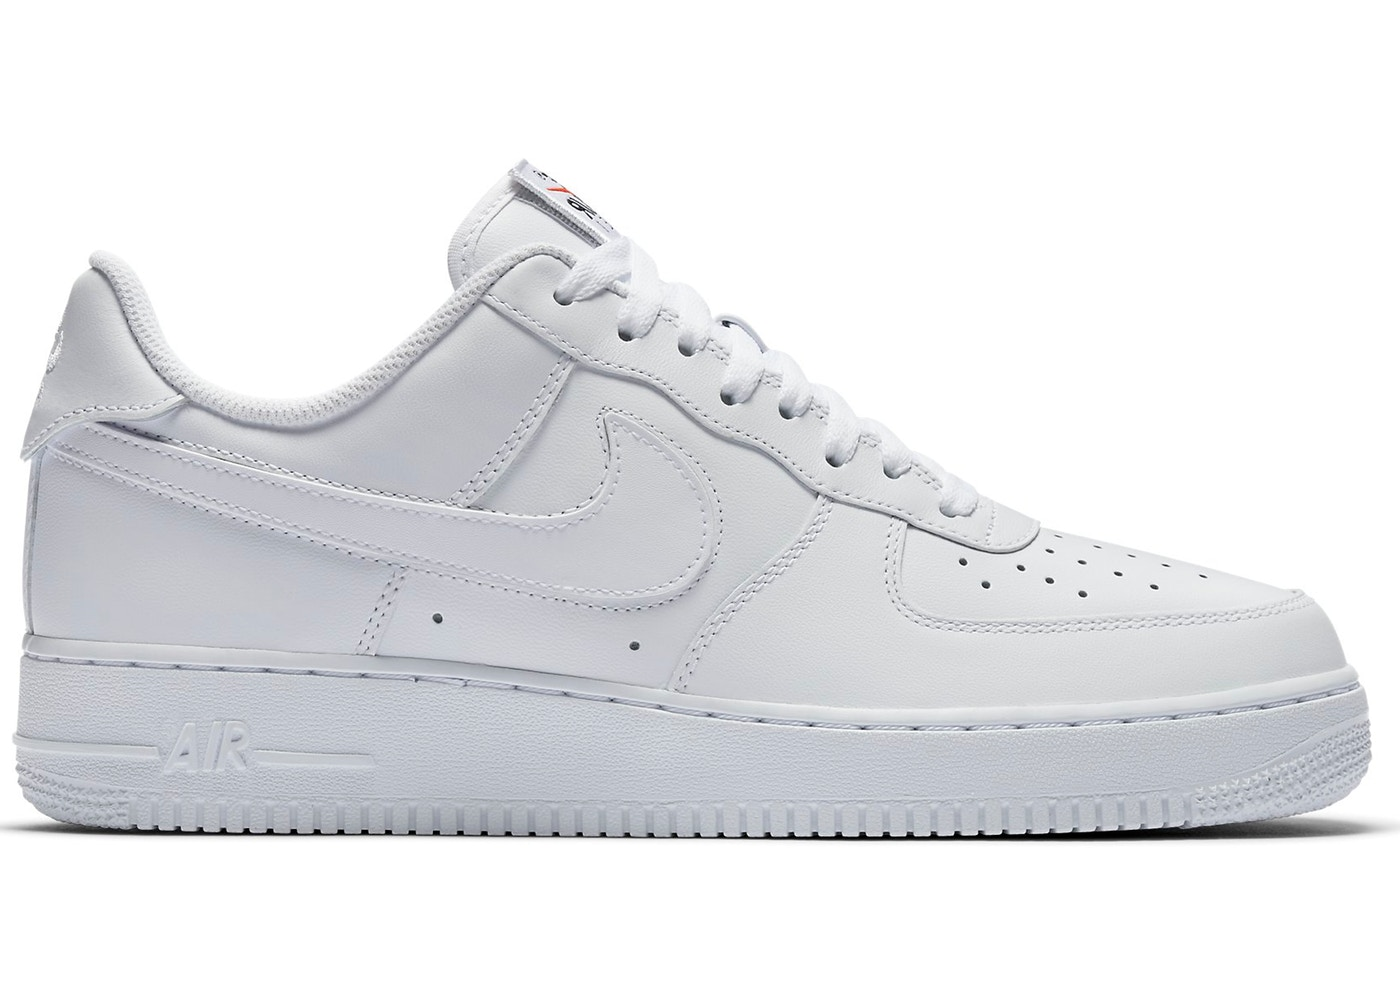 nime air force 1